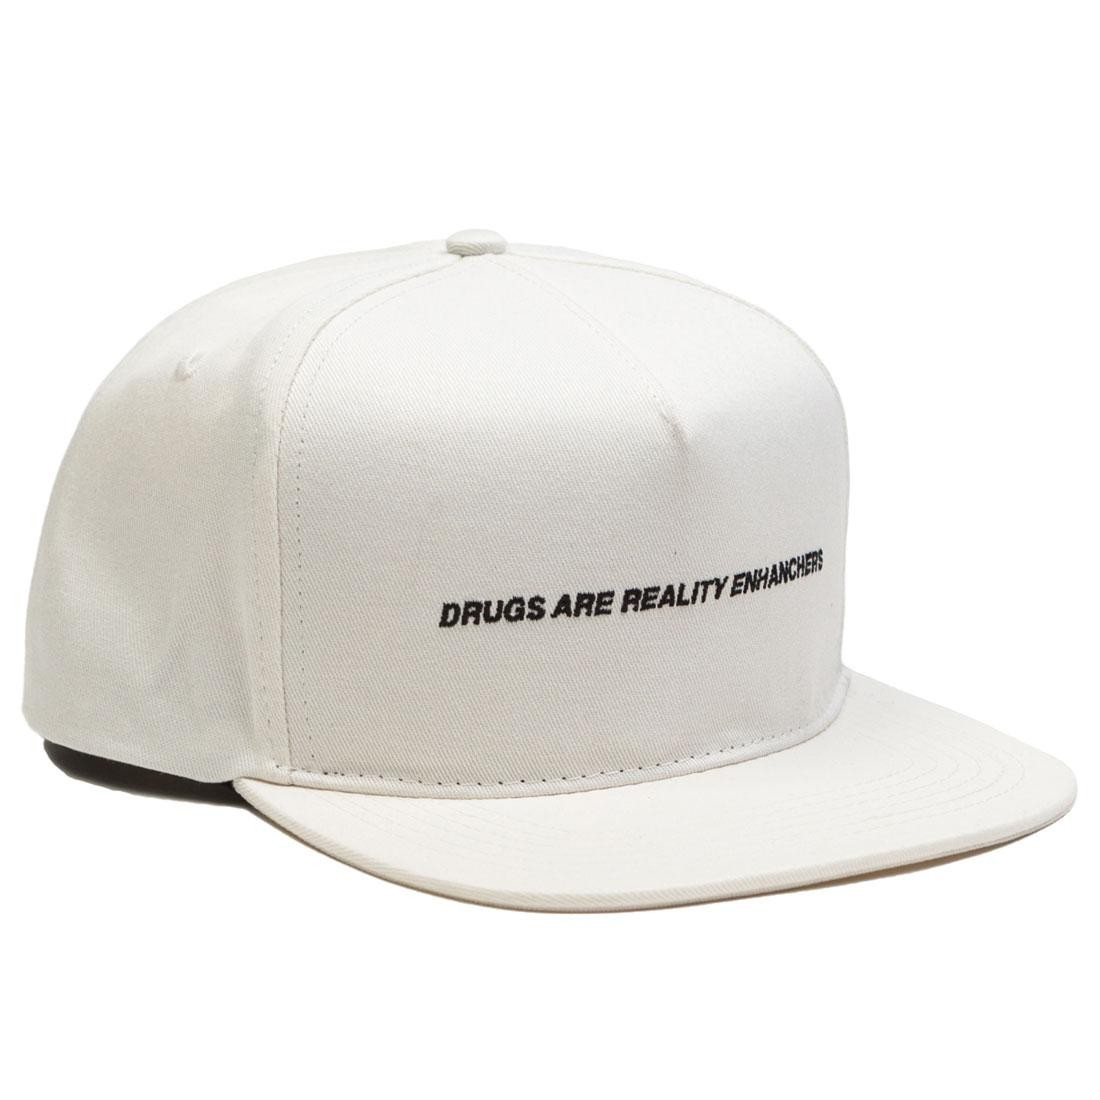 10 Deep Drugs Cap (white)